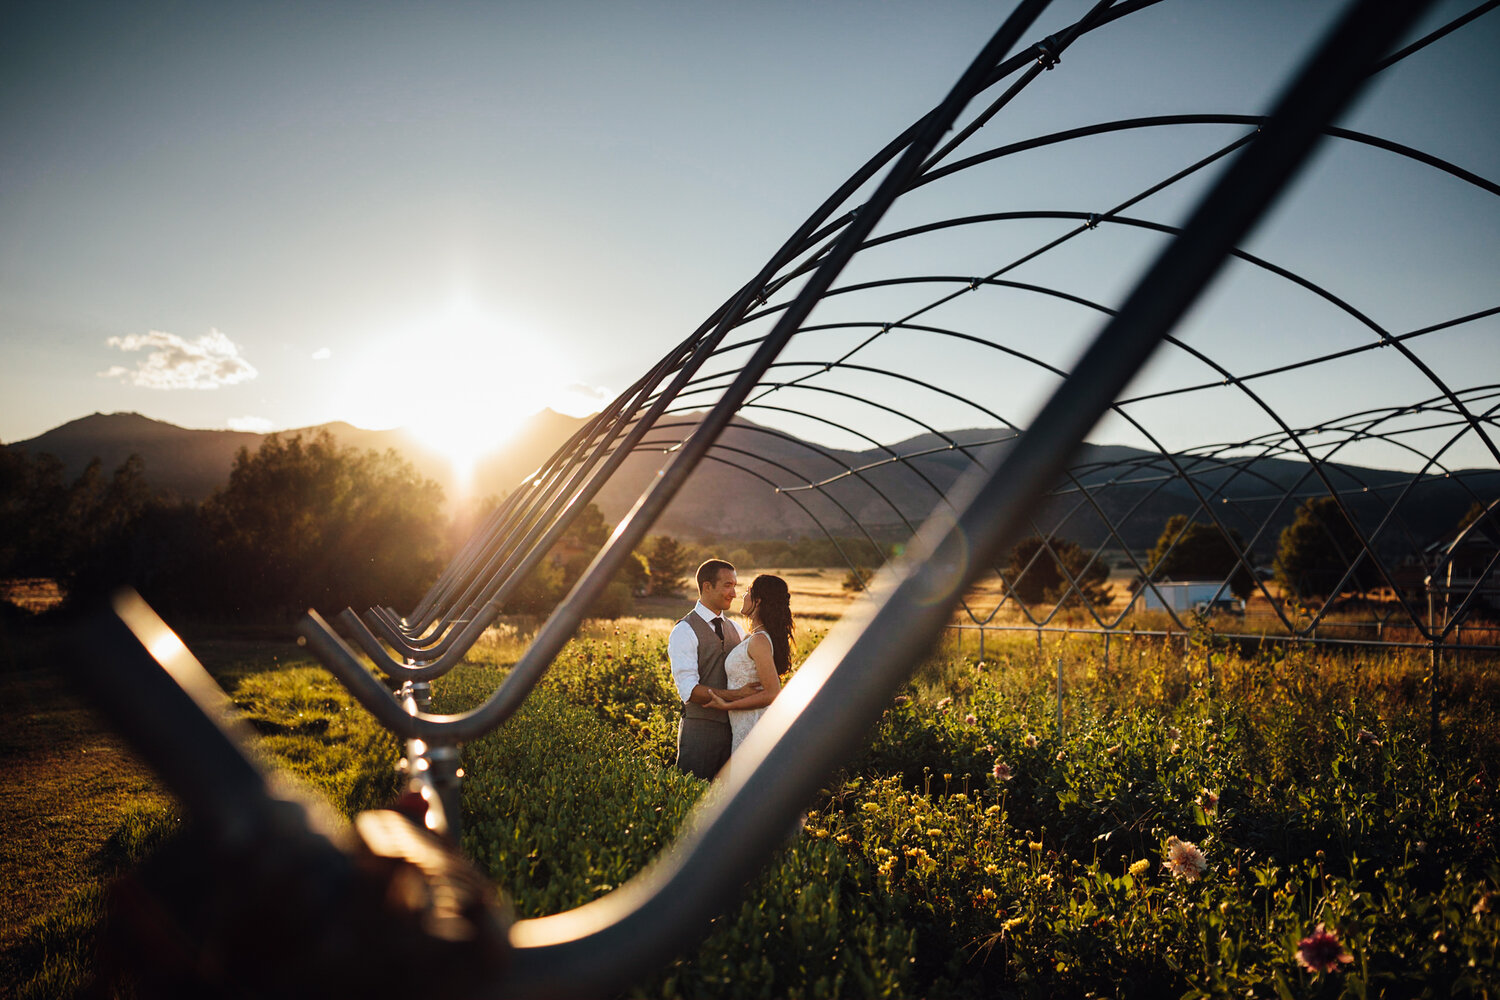 Golden hour with the view of the mountains from Pastures of Plenty's flower fields.